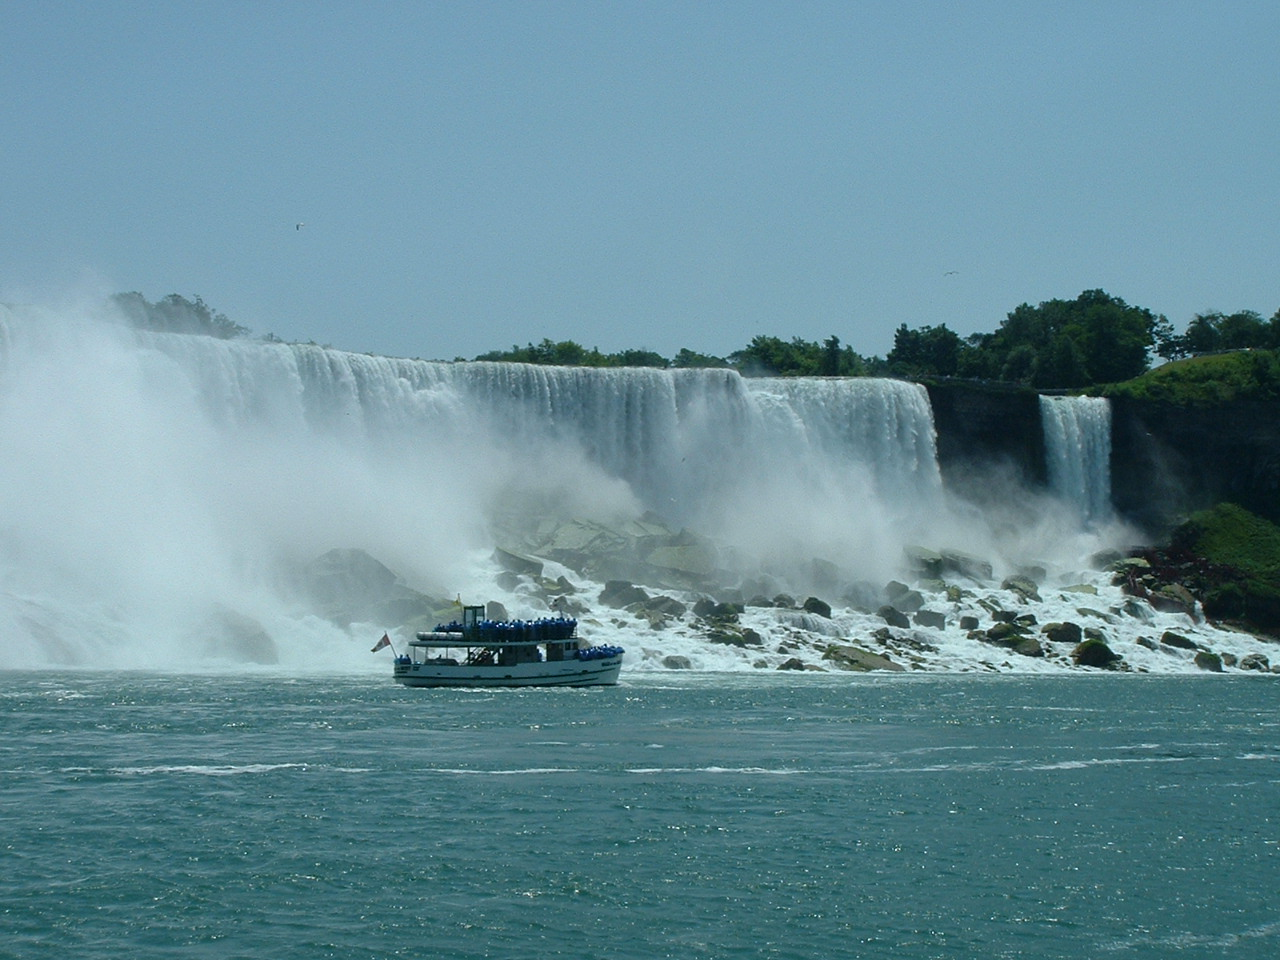 Niagara Falls from the Maid of the Mist